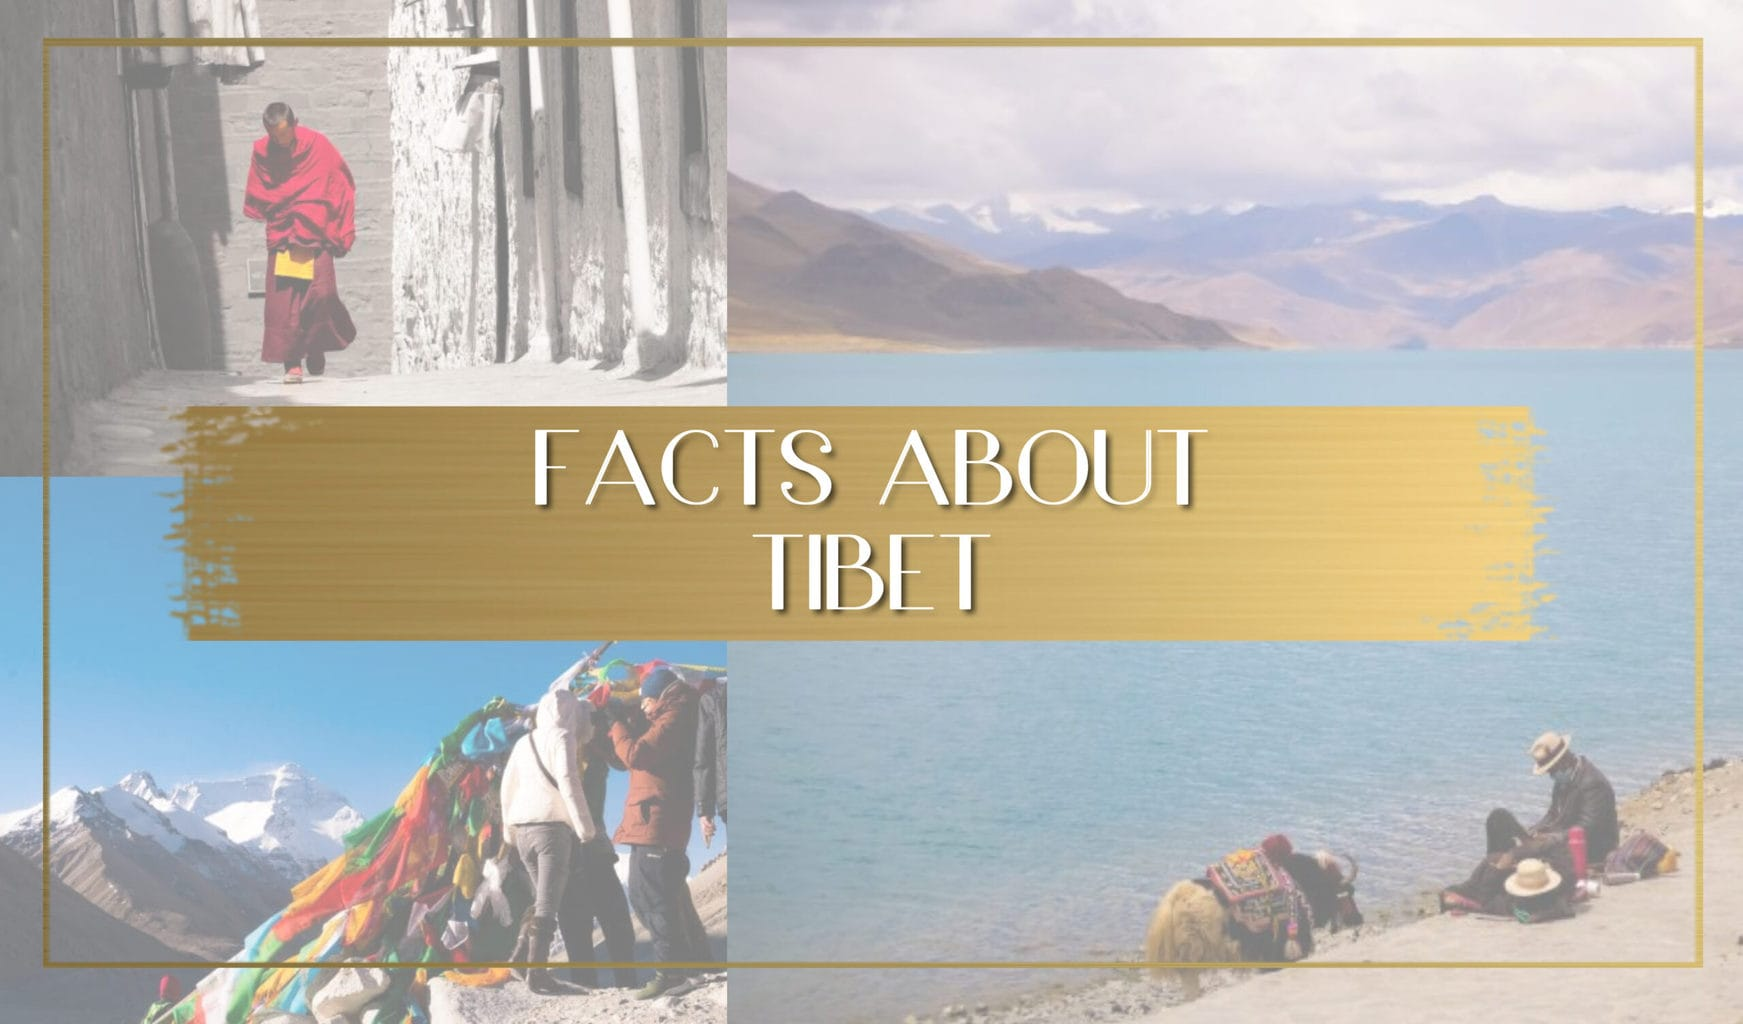 Facts about Tibet main